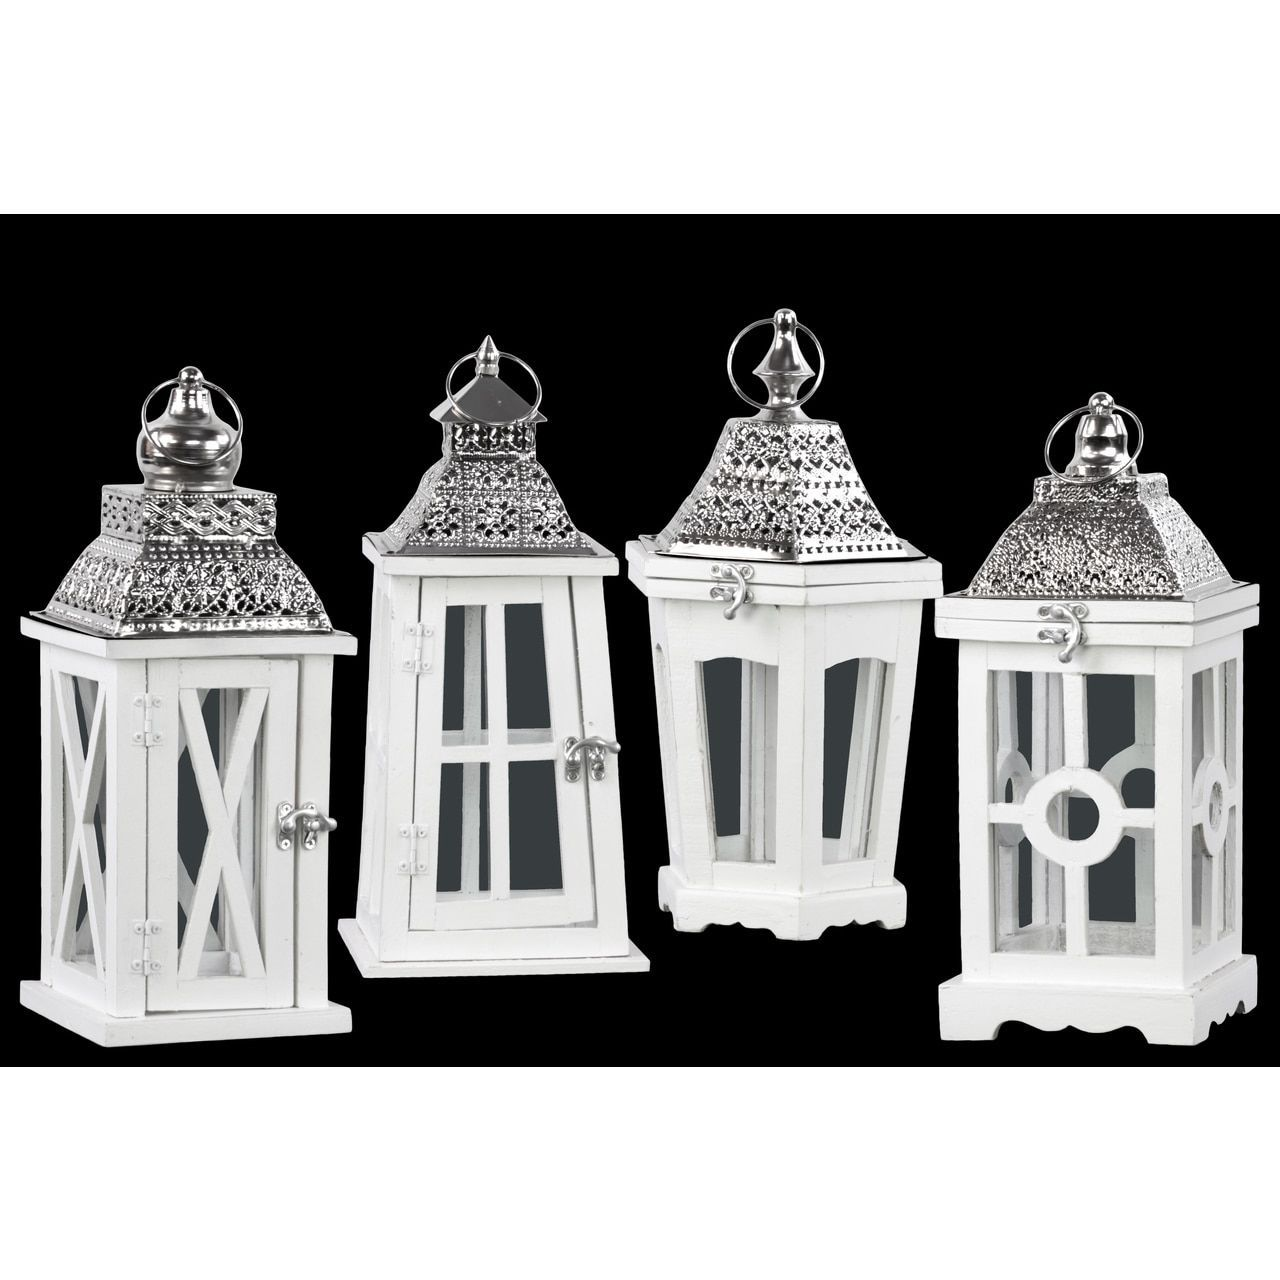 Urban Trends Collection /Silvertone /Pierced Metal/Glass Assorted Square Lanterns With Ring Hangers